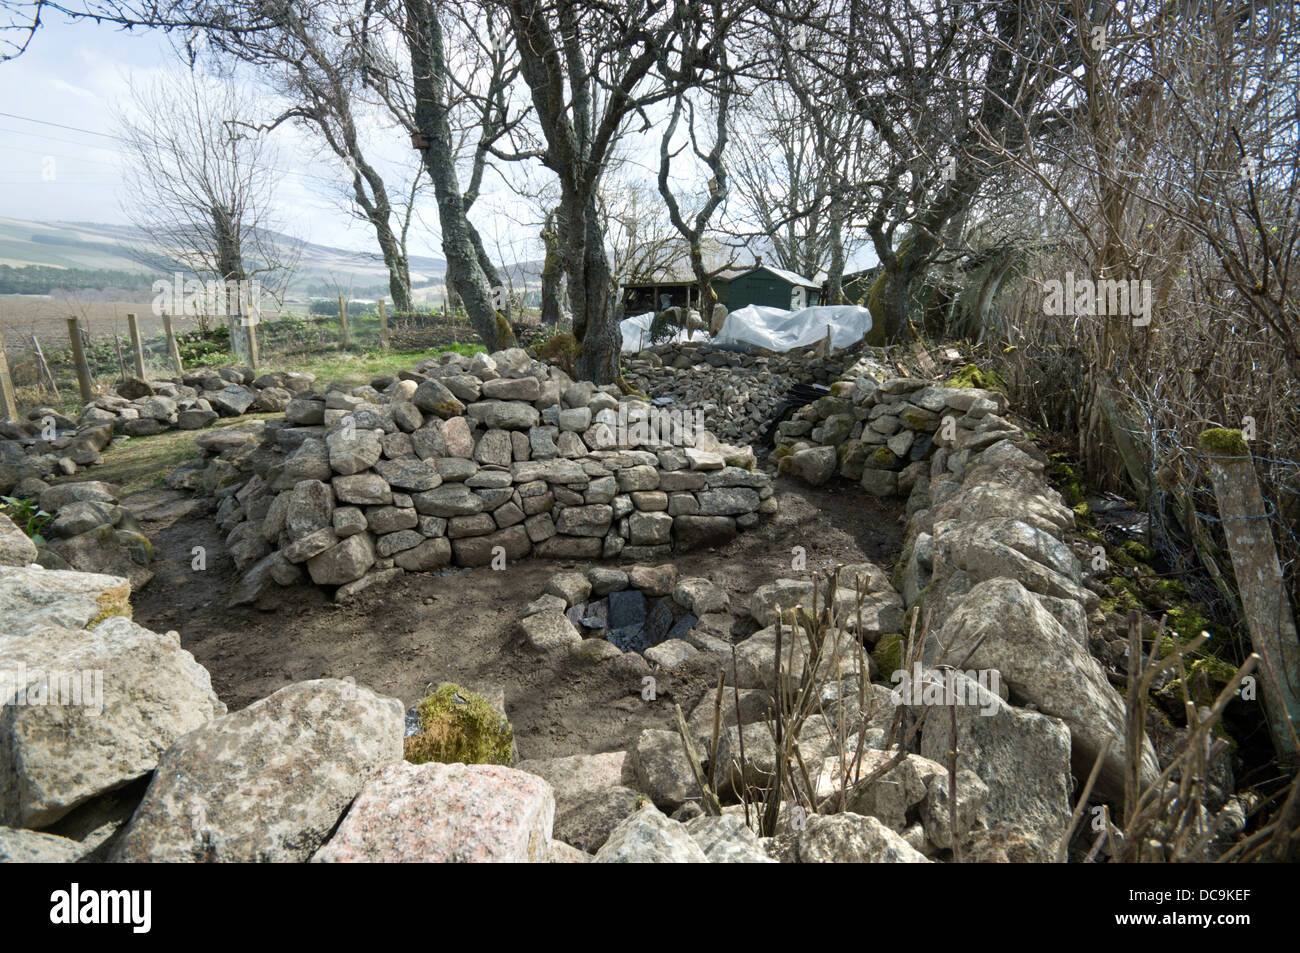 Image of: Stone Firepit Created In A Rural Garden For Outdoor Cooking Stock Photo Alamy